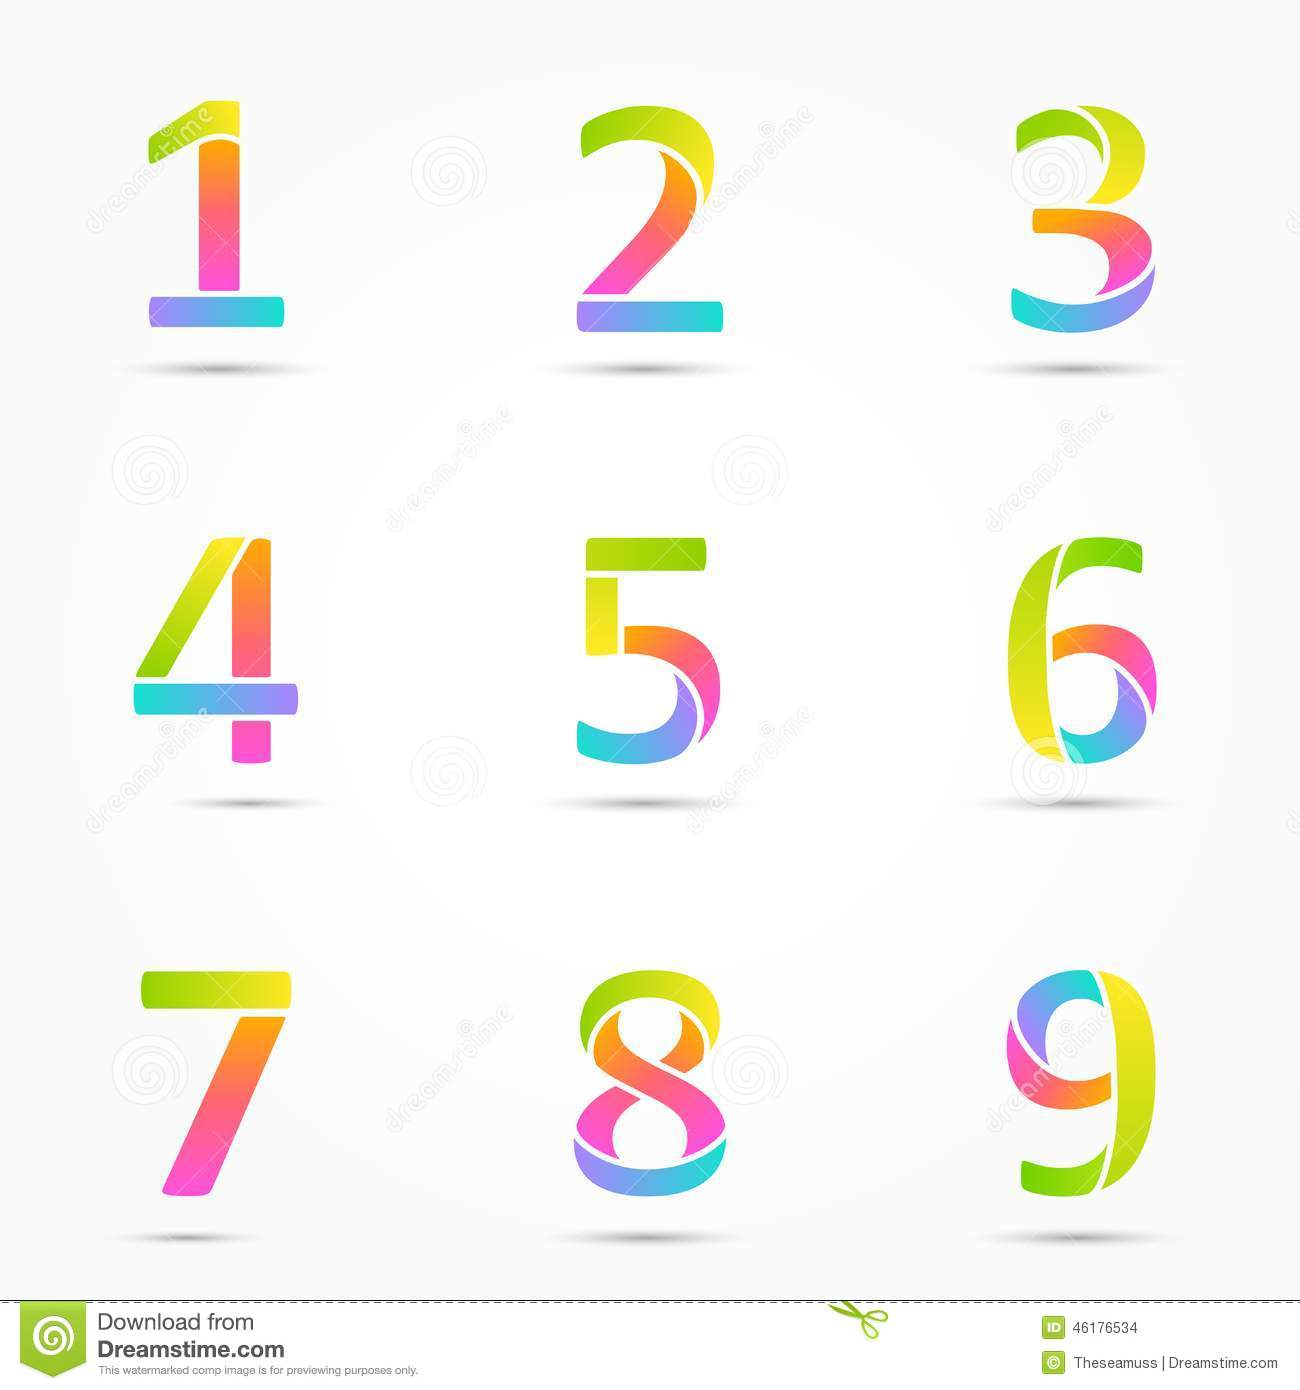 Logo Numbers 1, 2, 3, 4, 5, 6, 7, 8, 9 Template. Stock Vector ...